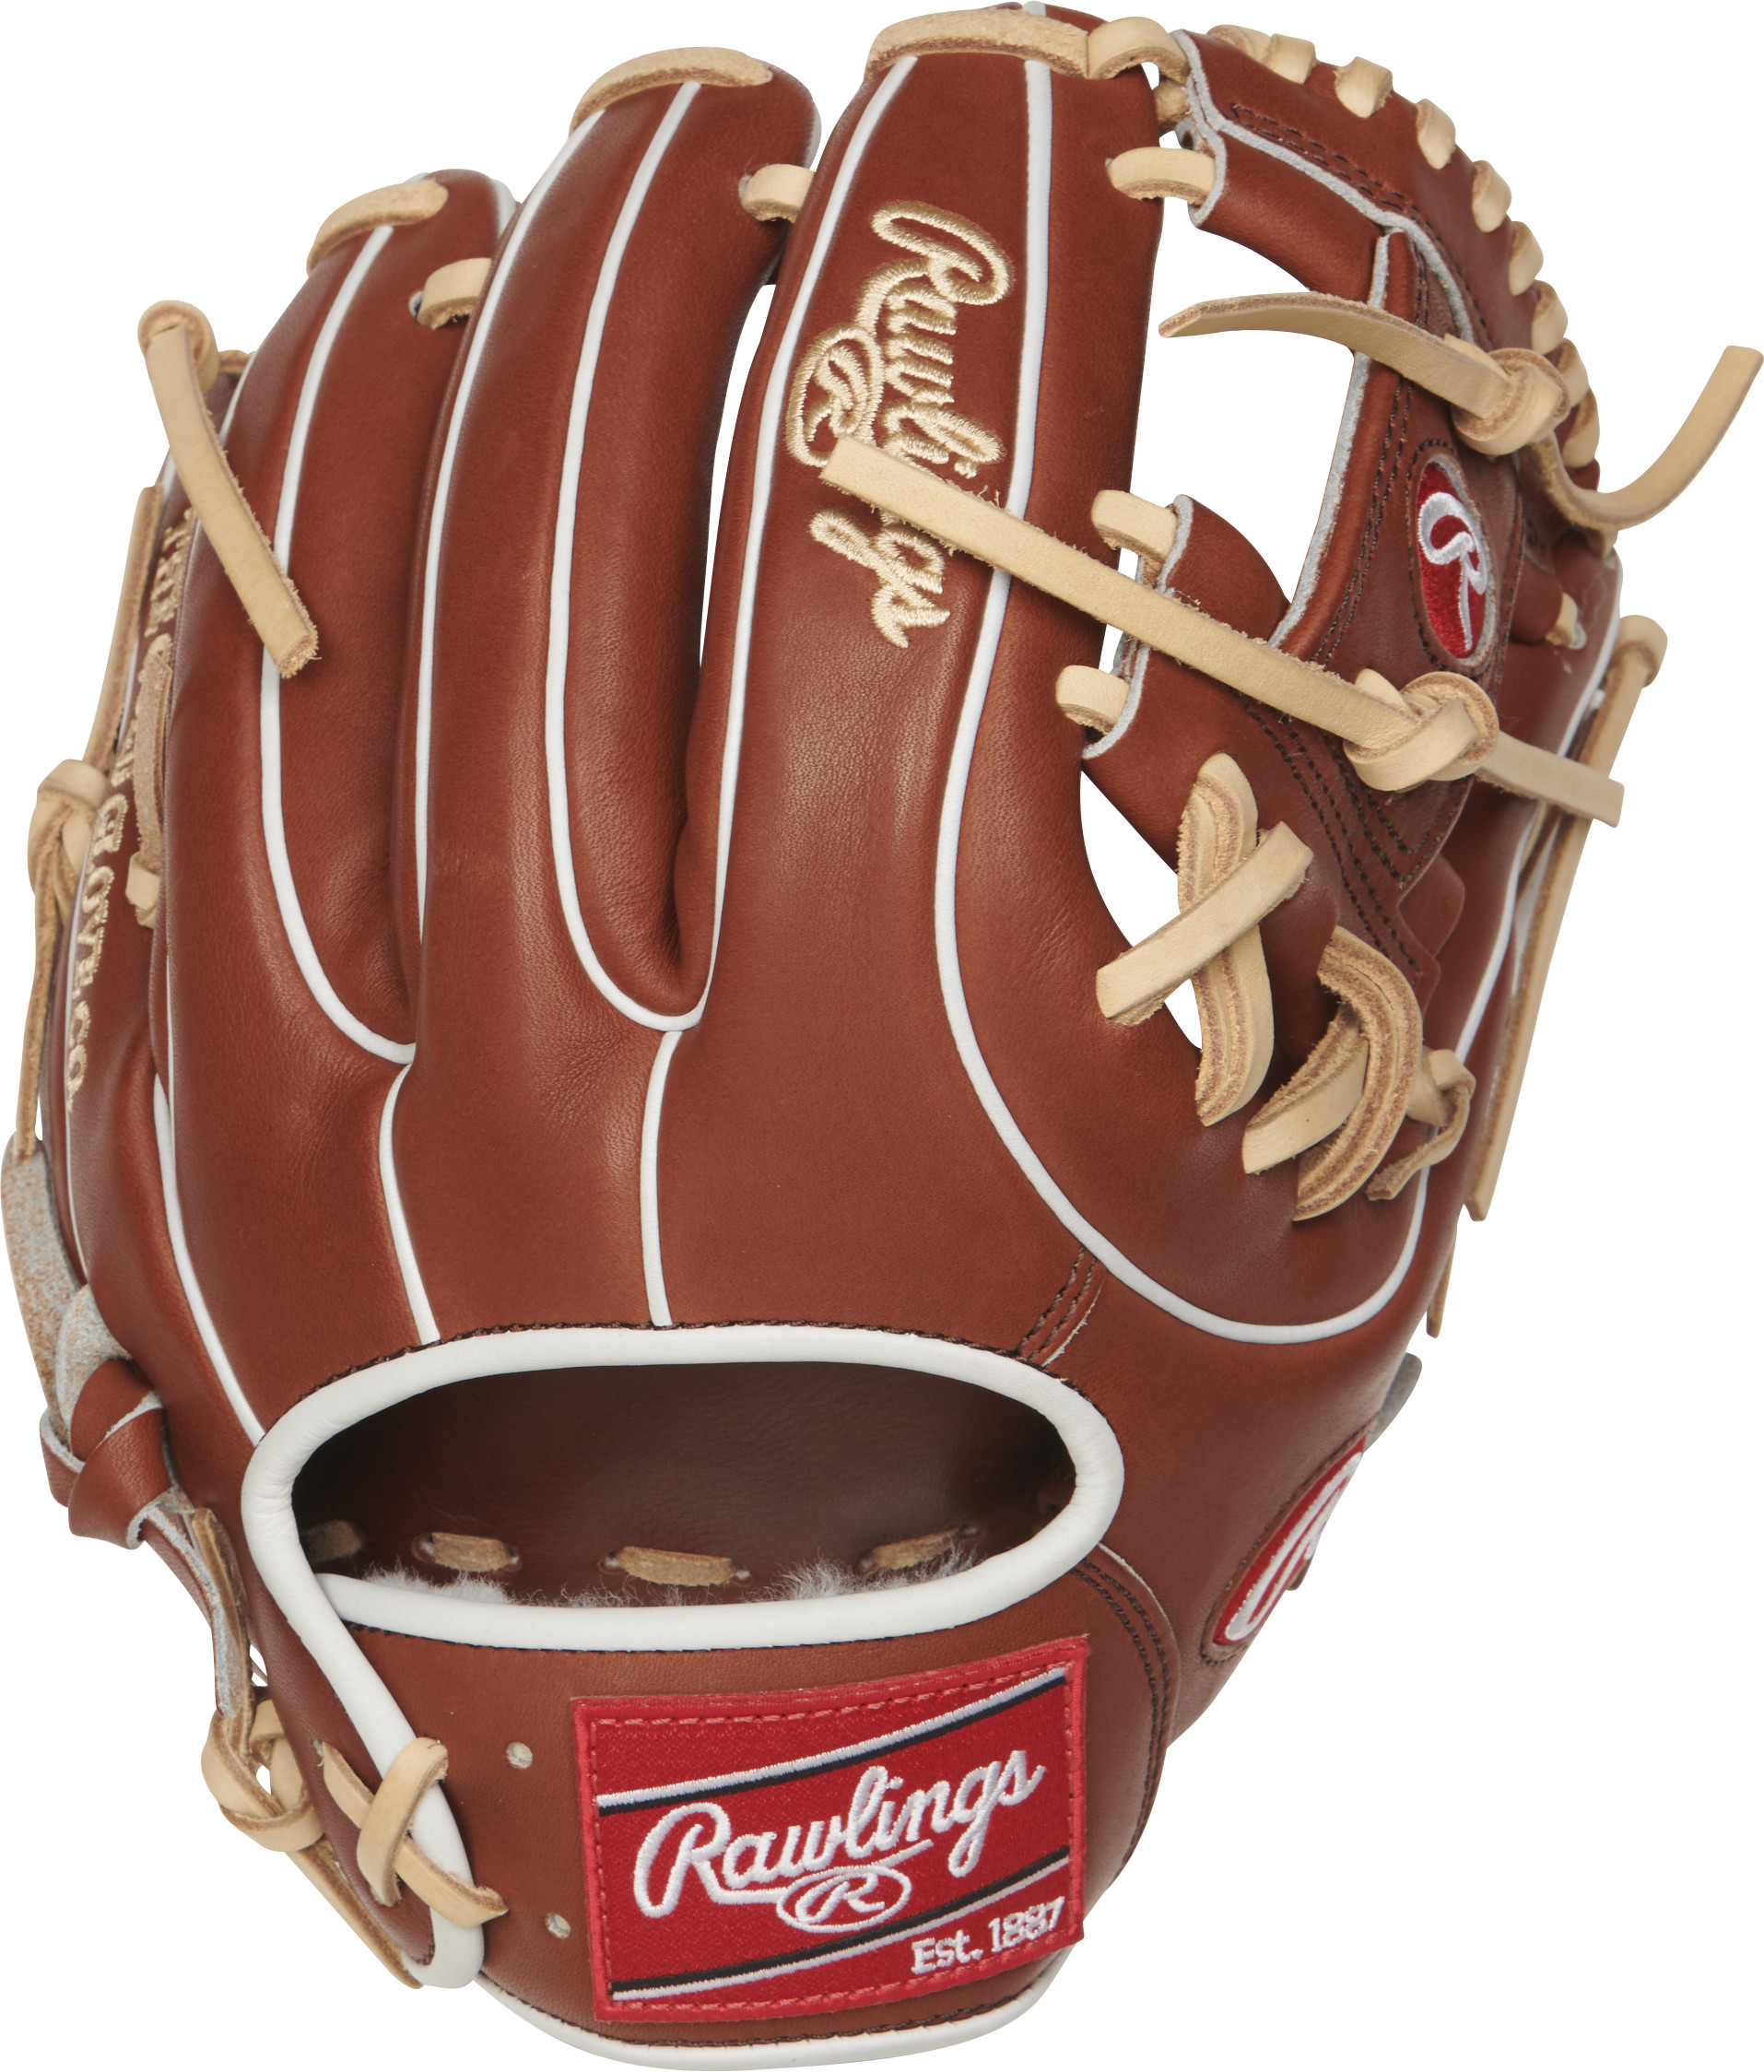 http://www.bestbatdeals.com/images/gloves/rawlings/PROS314-2BR-2.jpg